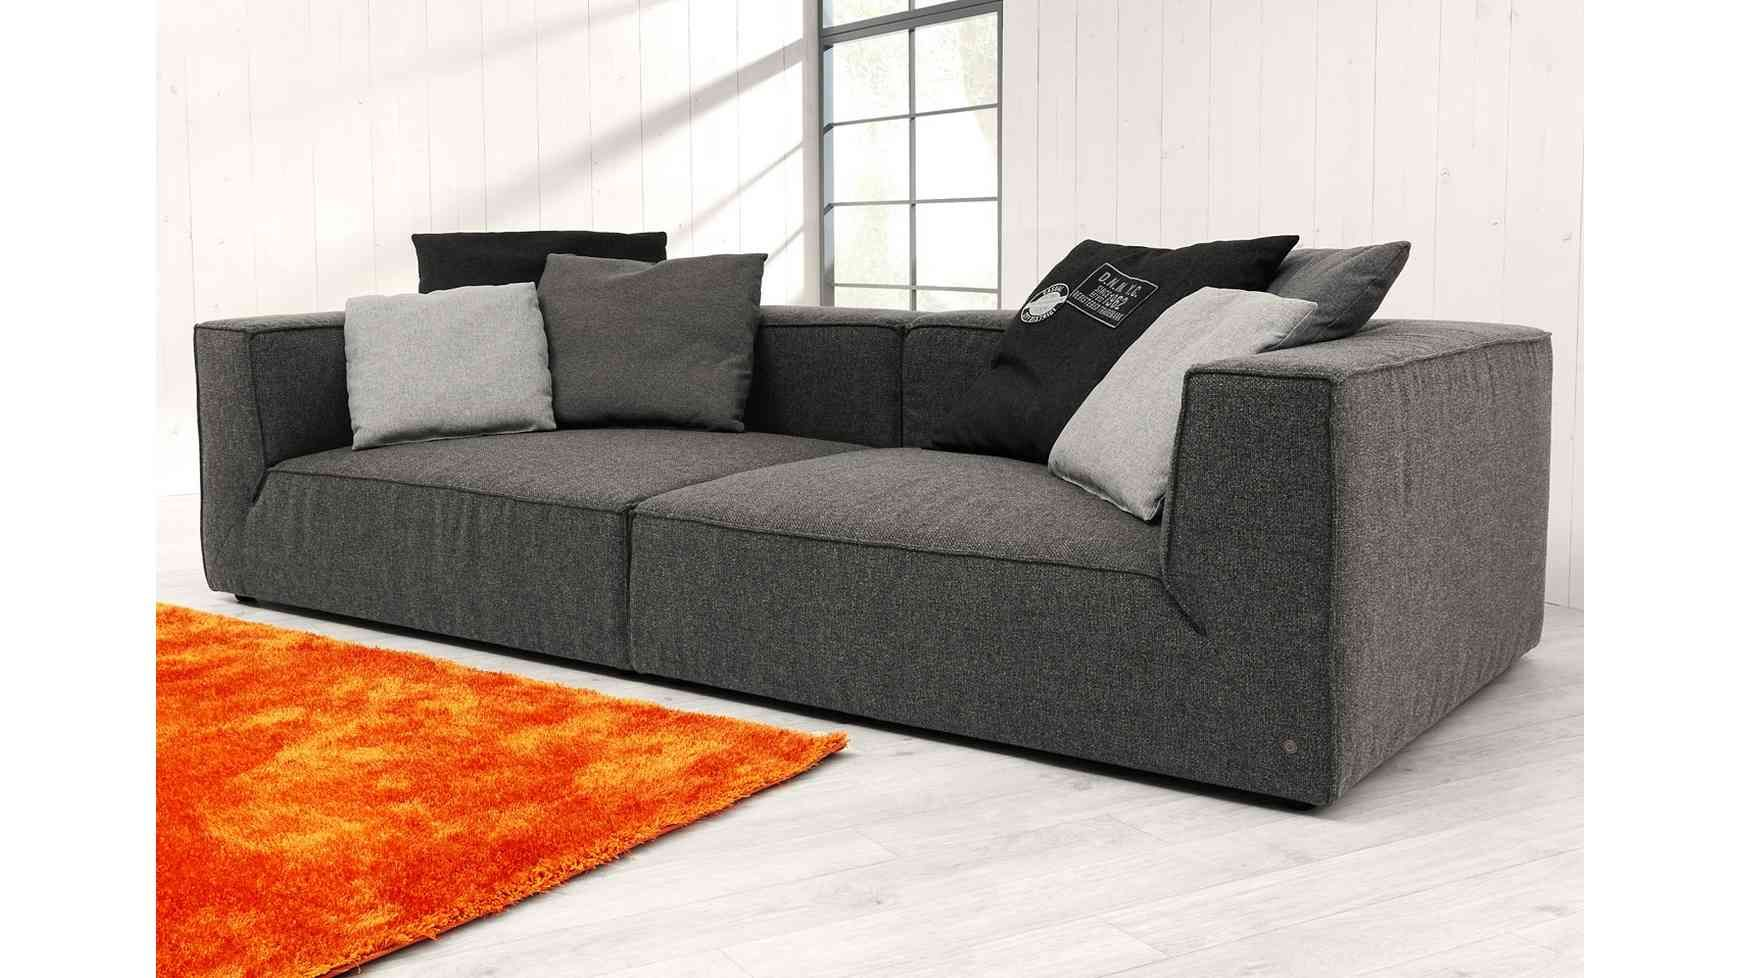 Big Sofa Trendmanufaktur Tom Tailor Big Sofa Big Cube Wahlweise Mit